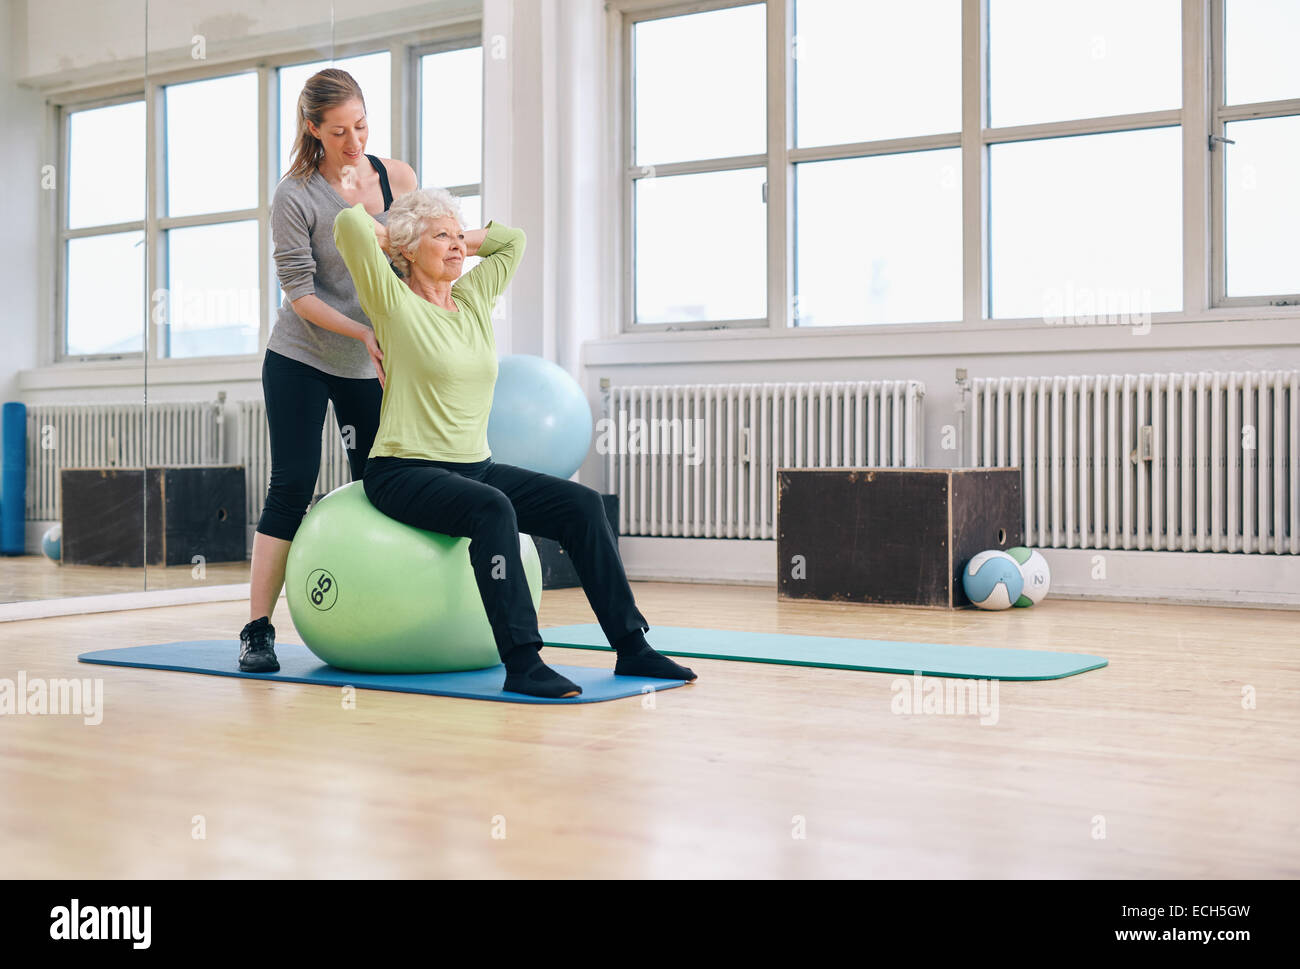 Senior woman sitting on a pilates ball exercising at health club being assisted by her personal trainer. Physical - Stock Image